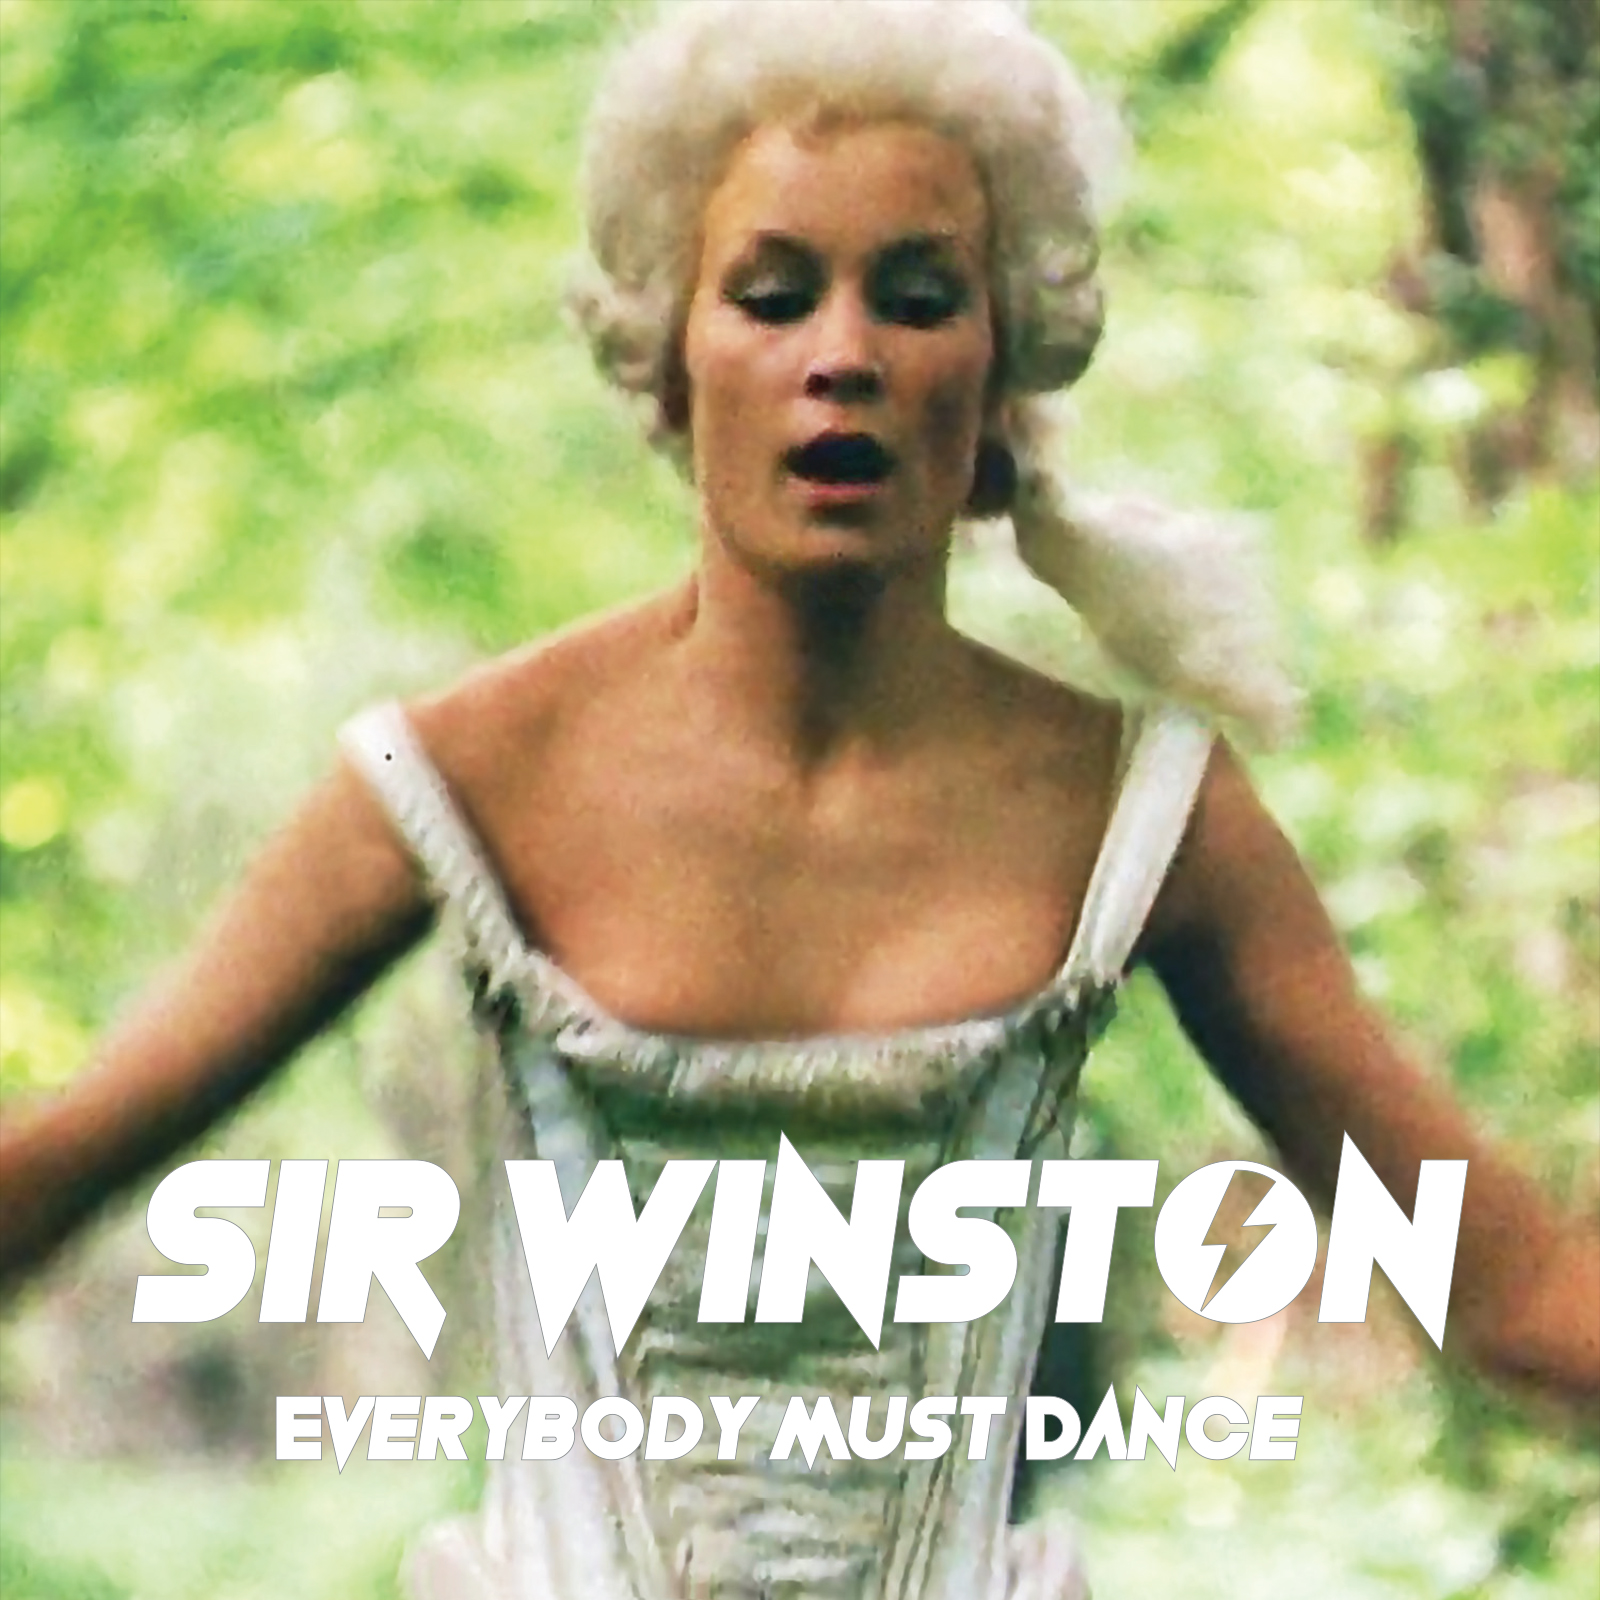 Sir Winston everybody must dance